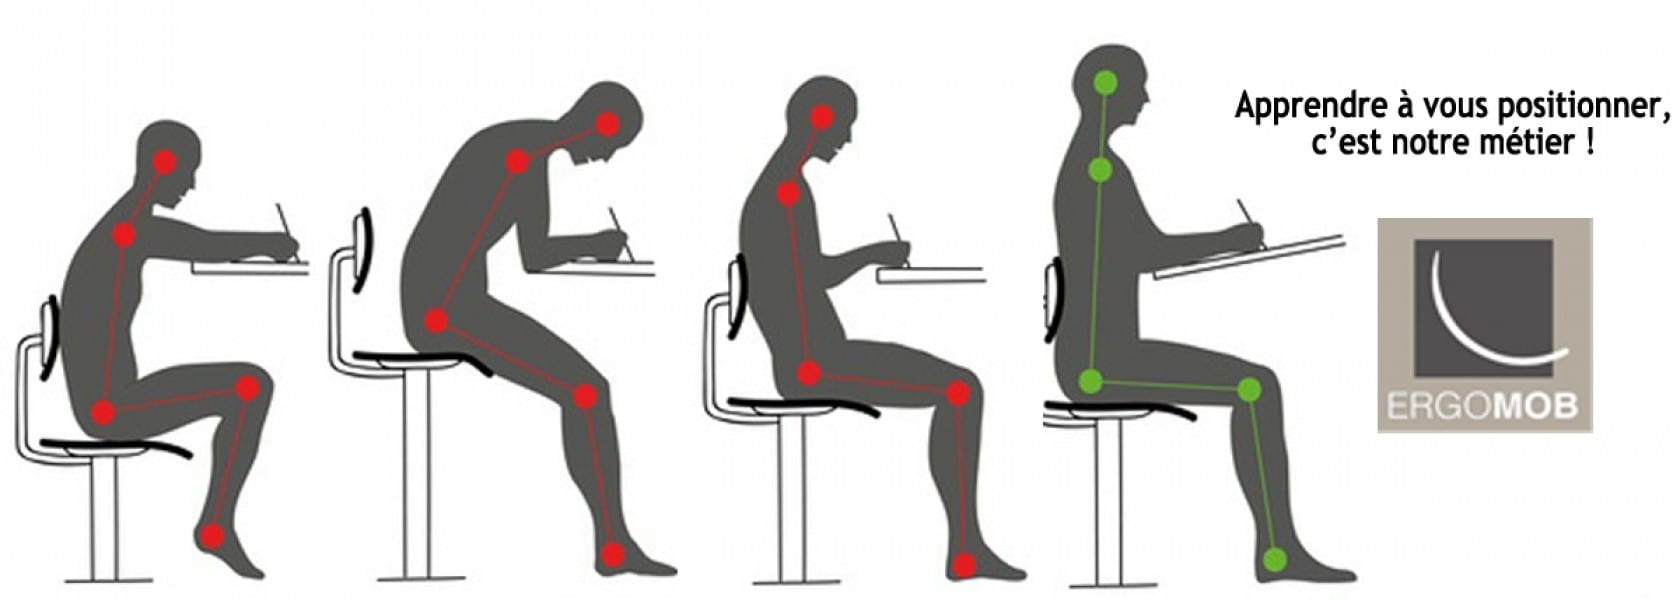 posture1 Sit-up and listen alberta correct posture Leduc leducphysio physiotherapy posture